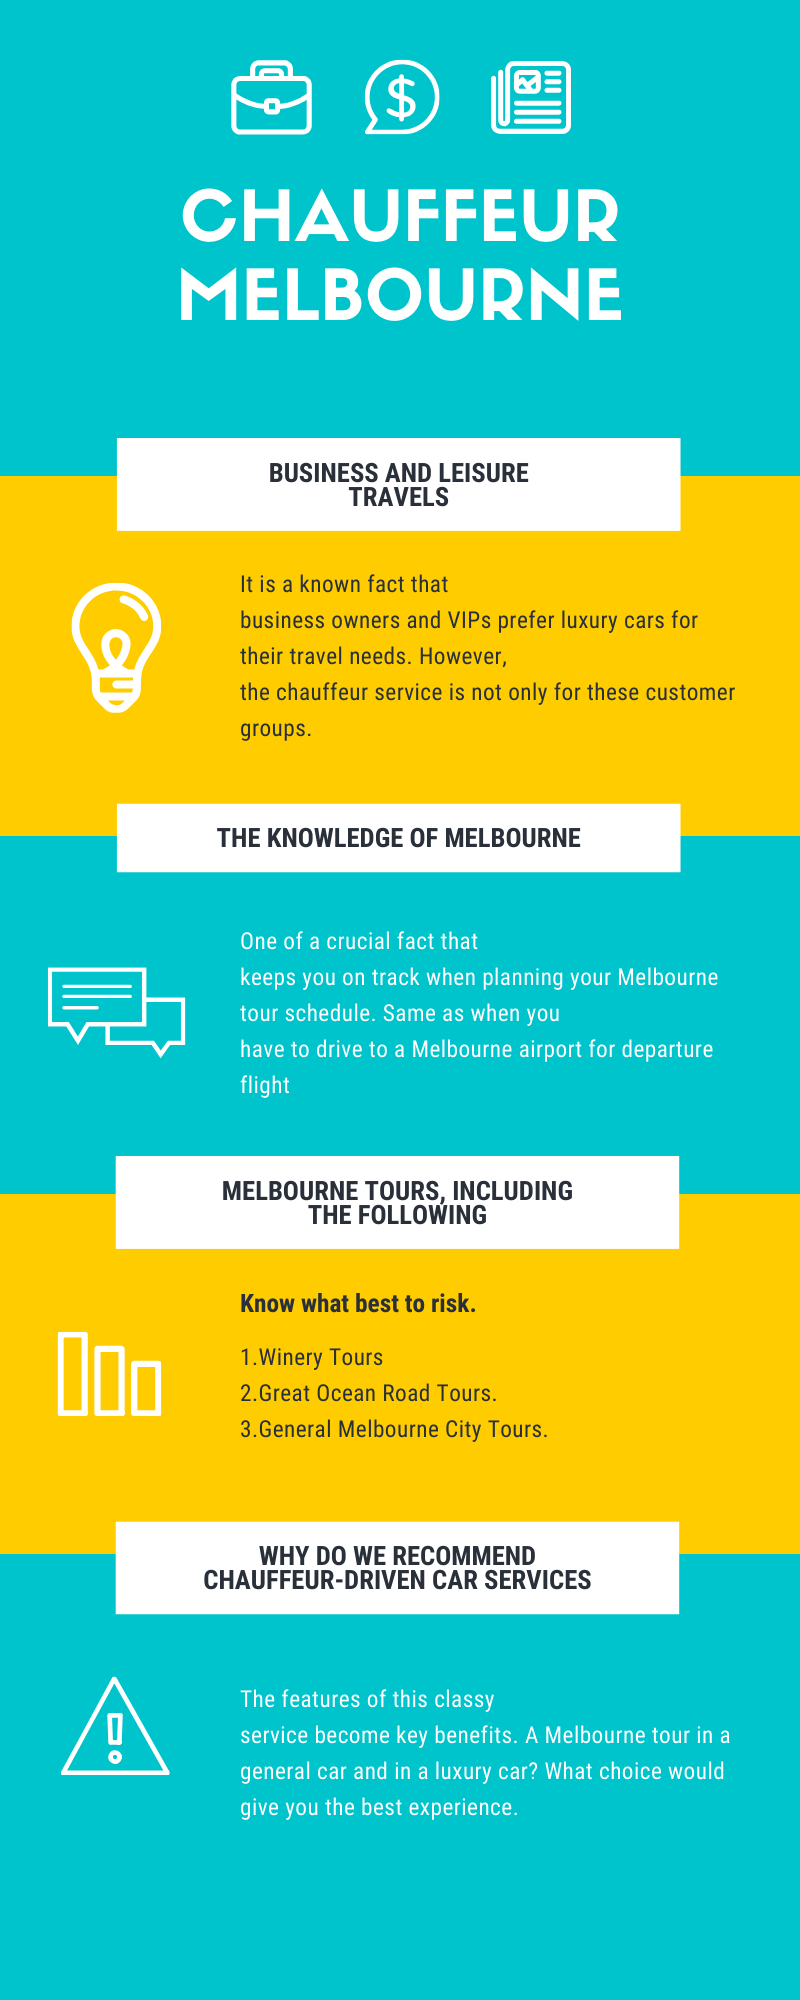 Why Is Chauffeur Melbourne The Best For Melbourne Tours?